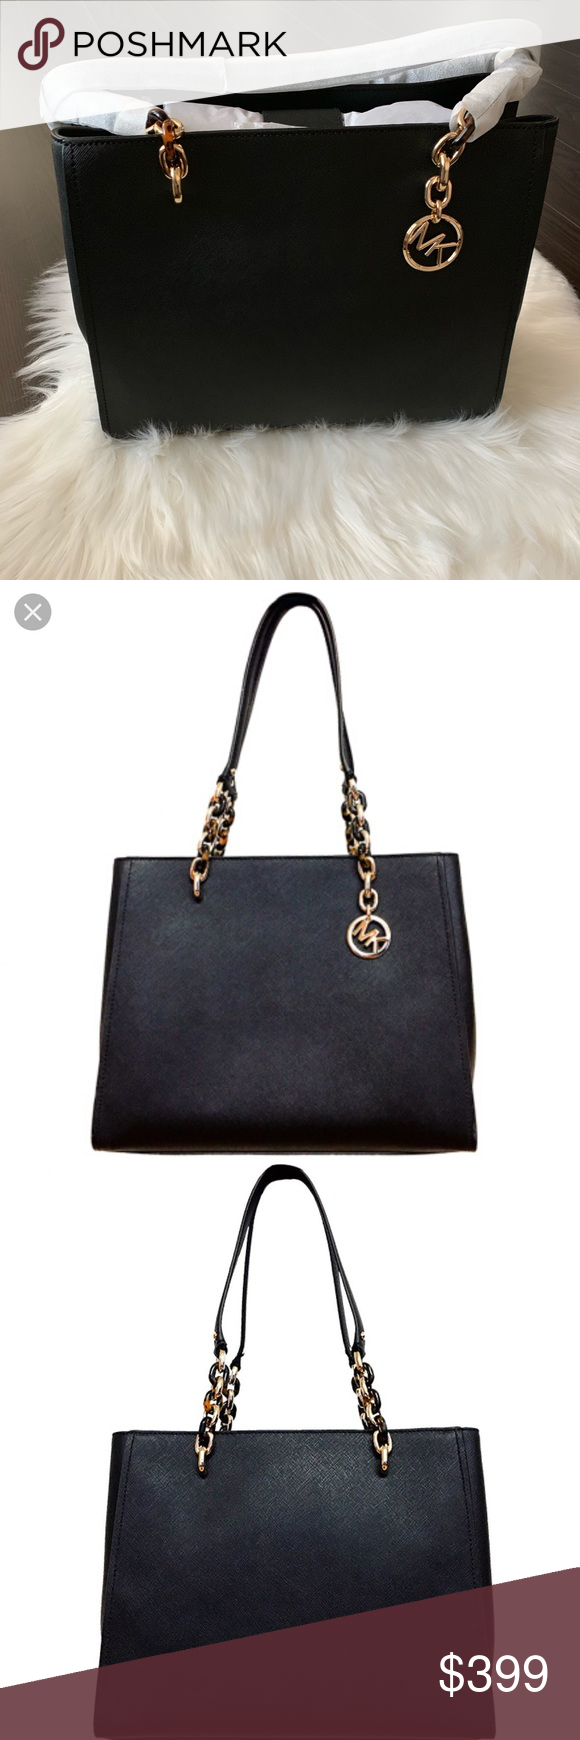 f79568bcb79d 🚨PRICE DROP🚨Michael Kors Sofia Large Tote ABSOLUTELY GORGEOUS! Michael  Kors Sofia Large